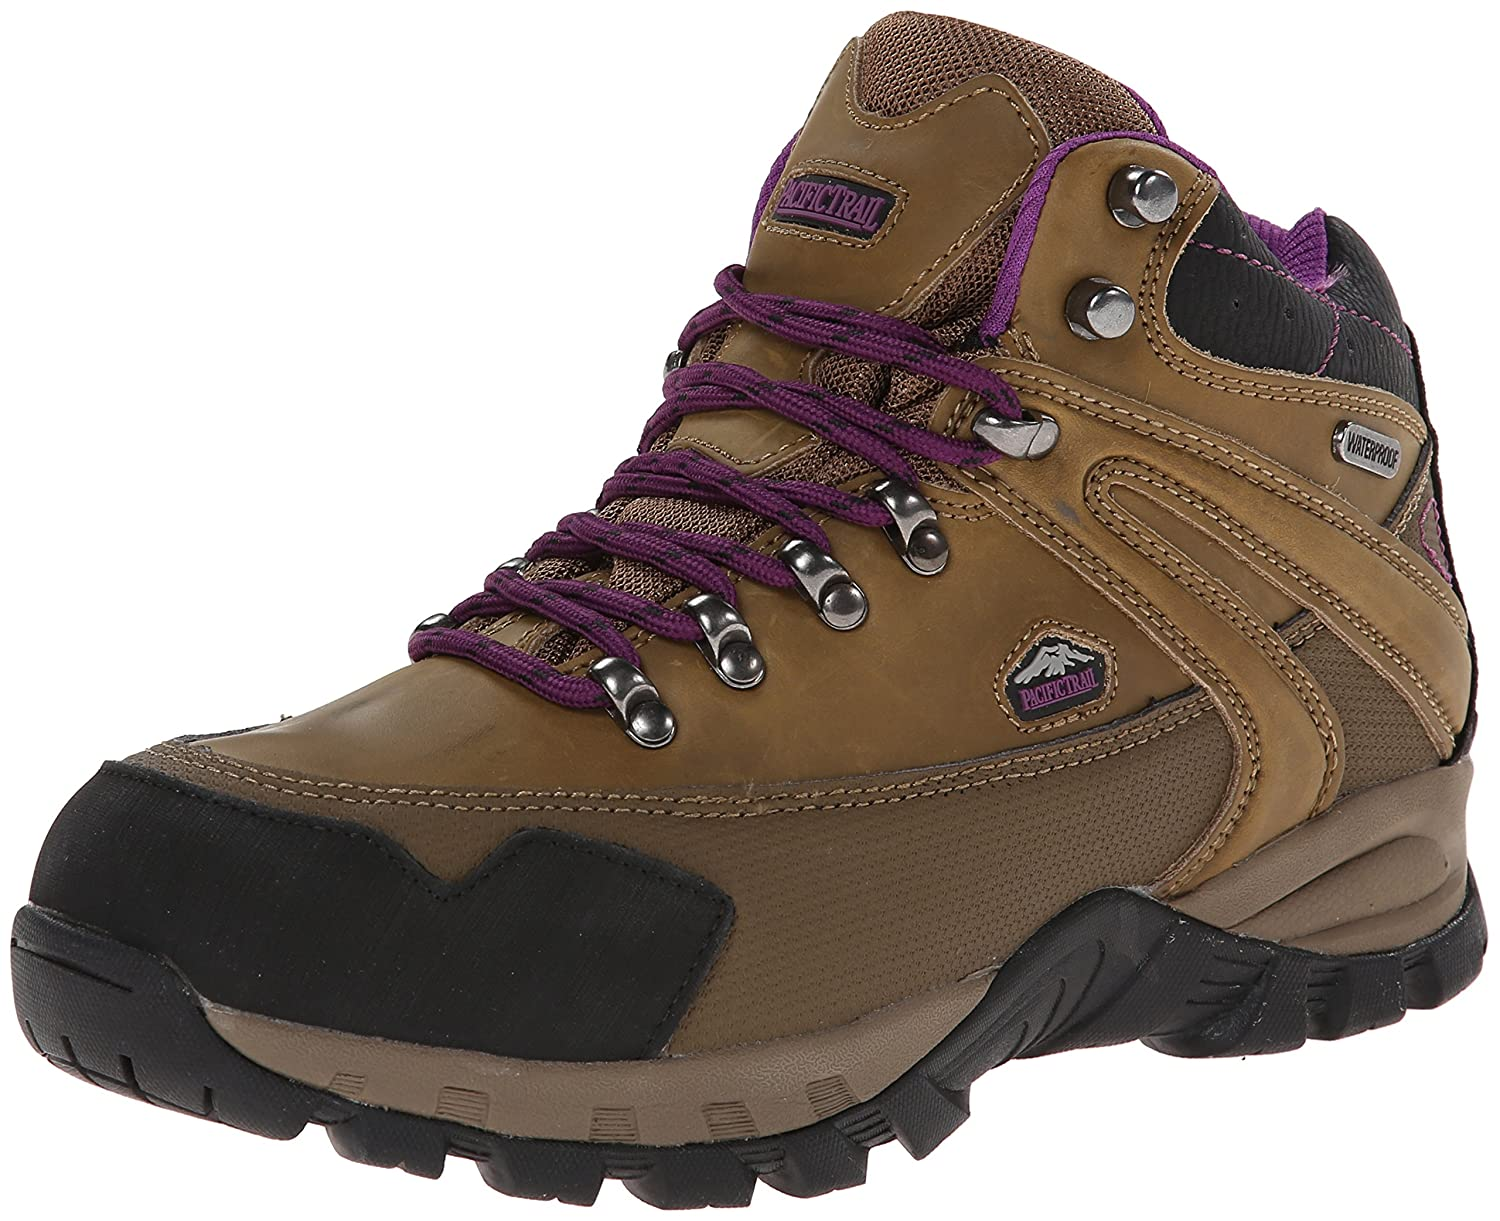 Pacific Trail Women's Rainier Waterproof Hiking Boot B00LCUOTS6 6.5 B(M) US|Smokey Brown/Black/Purple